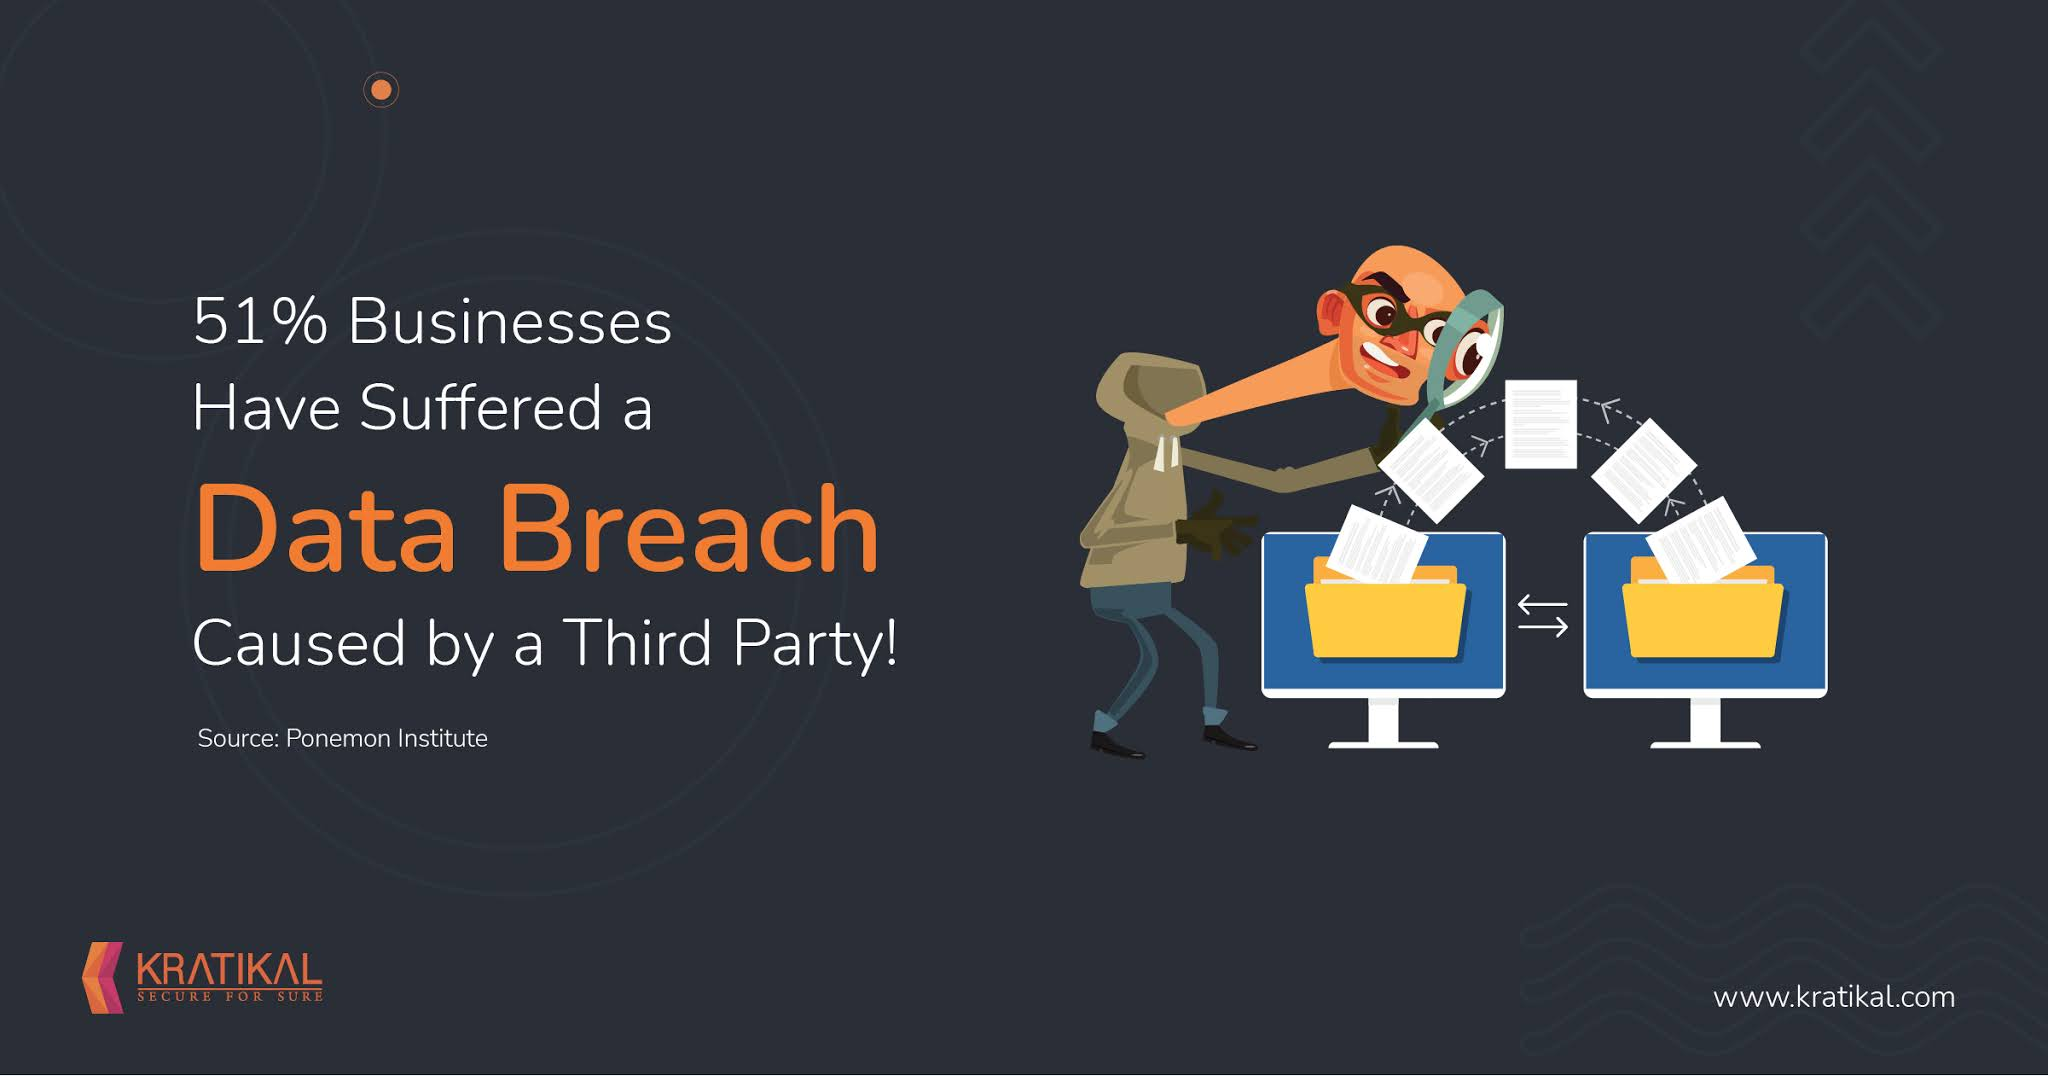 51% businesses suffered a data breach caused by a third-party